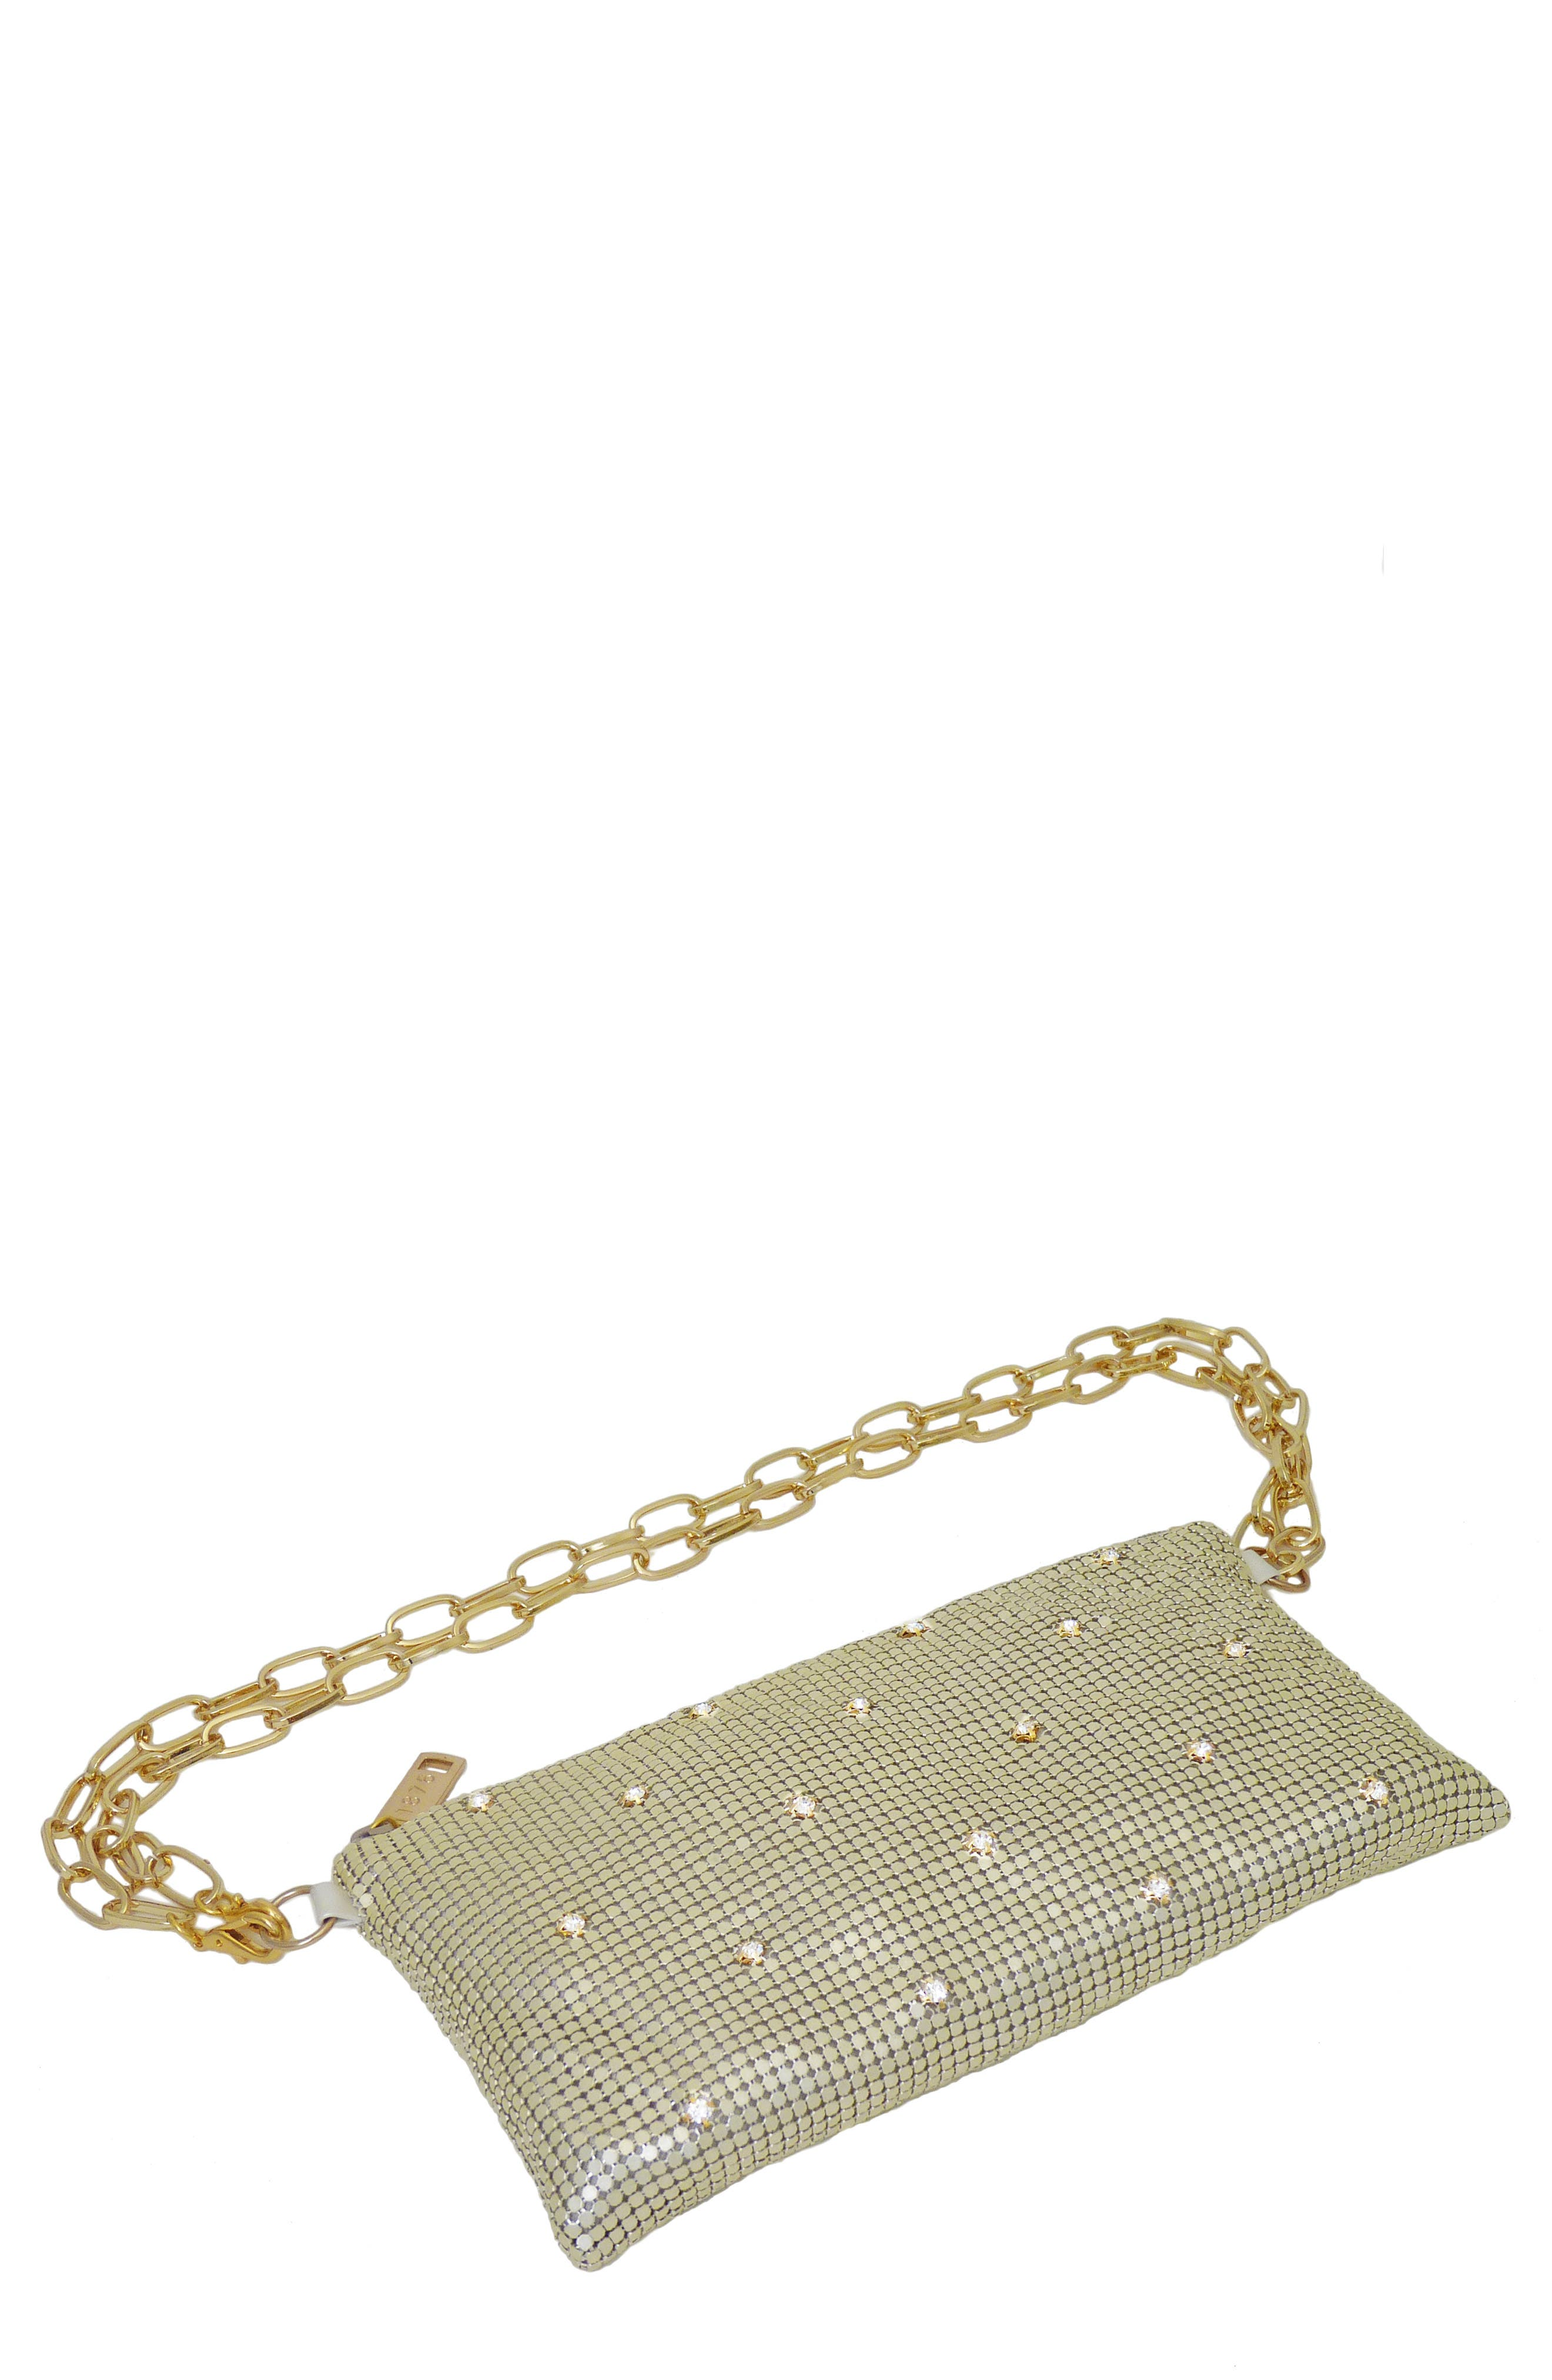 WHITING & DAVIS Crystal Belt Bag - Ivory in Pearl